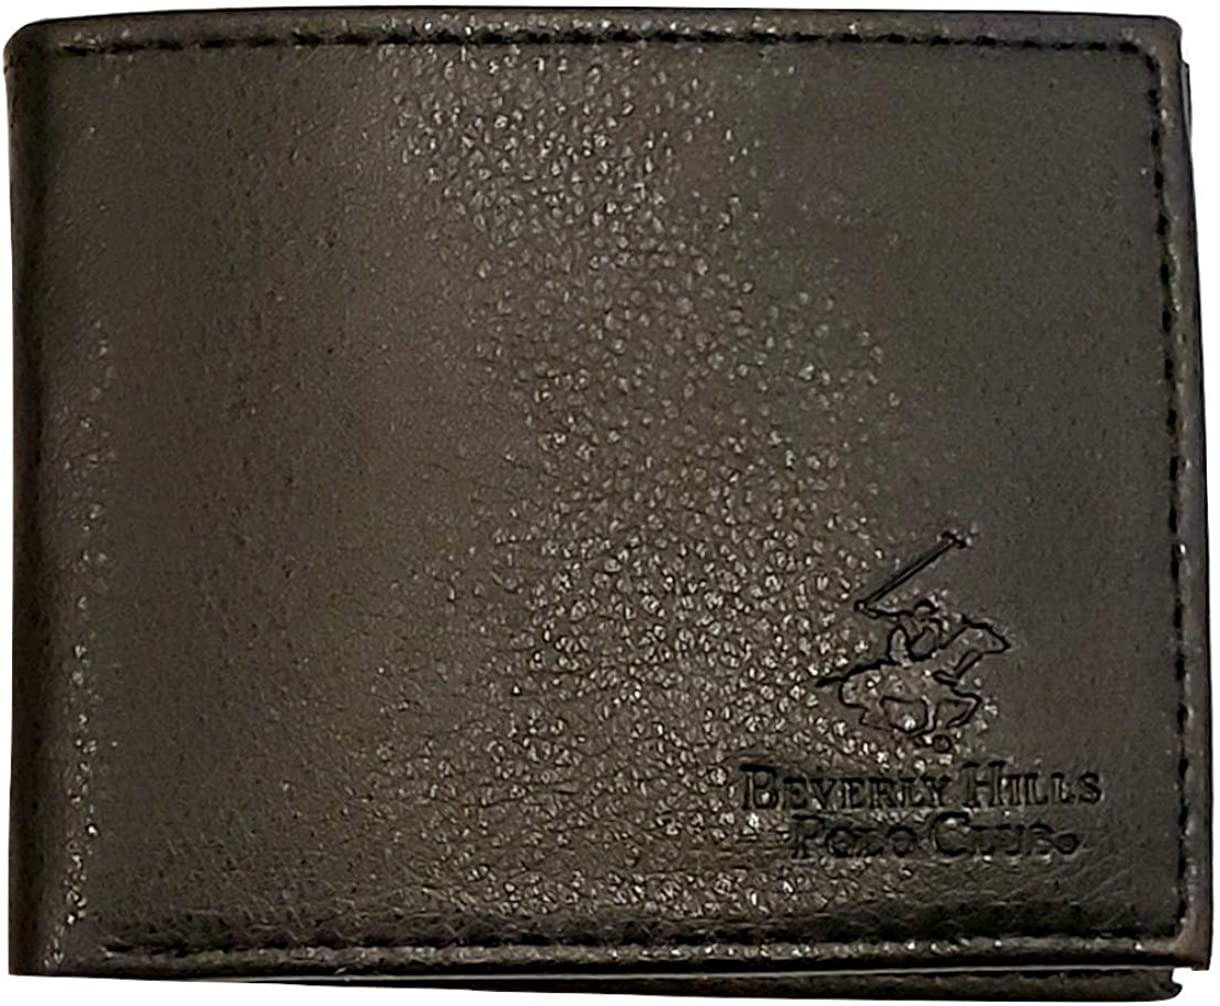 Beverly Hills Polo Club Men's Embossed Genuine Leather Black Wallets - Gift Boxed Bi-Fold and Tri-Fold Black Leather Wallets